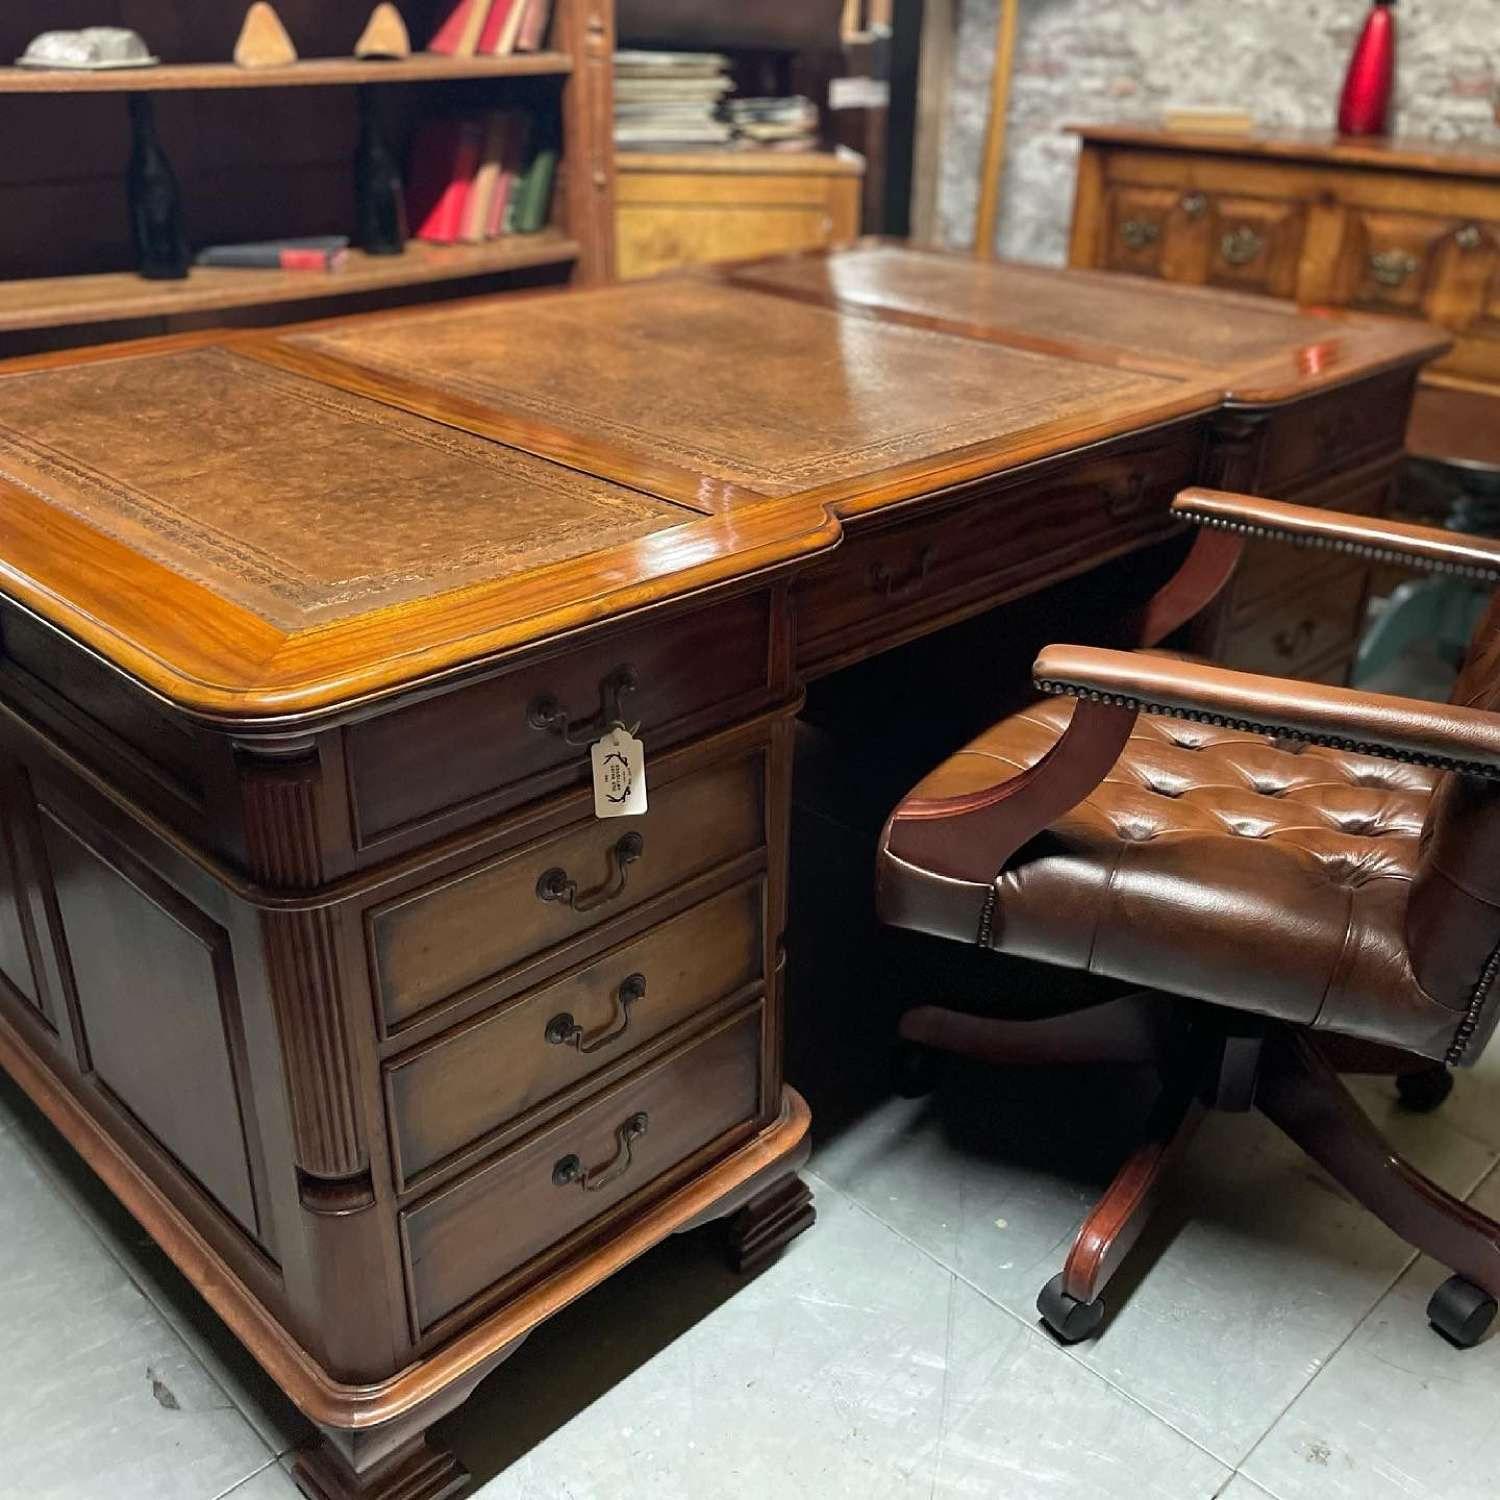 A Large solid Mahogany double sided Partners desk